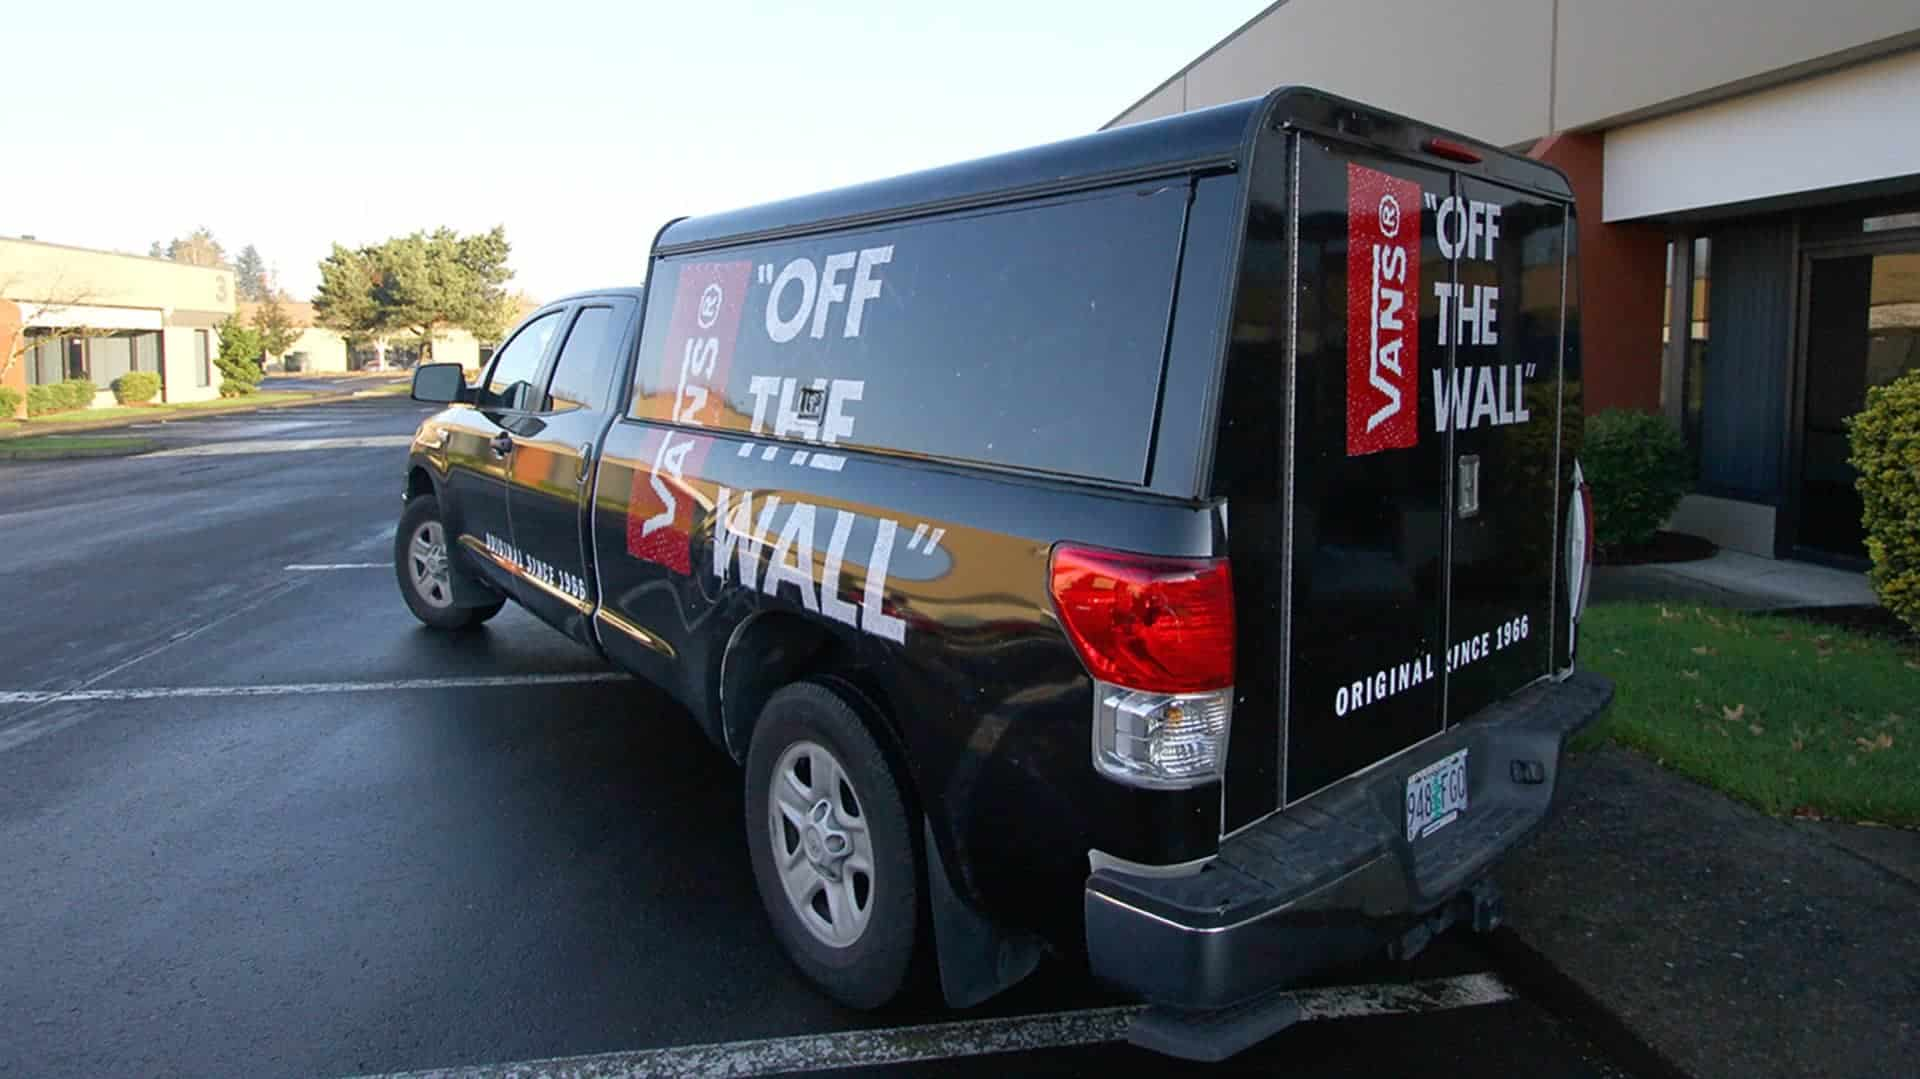 Toyota Tundra Full wrap + Canopy for Vans Off the Wall